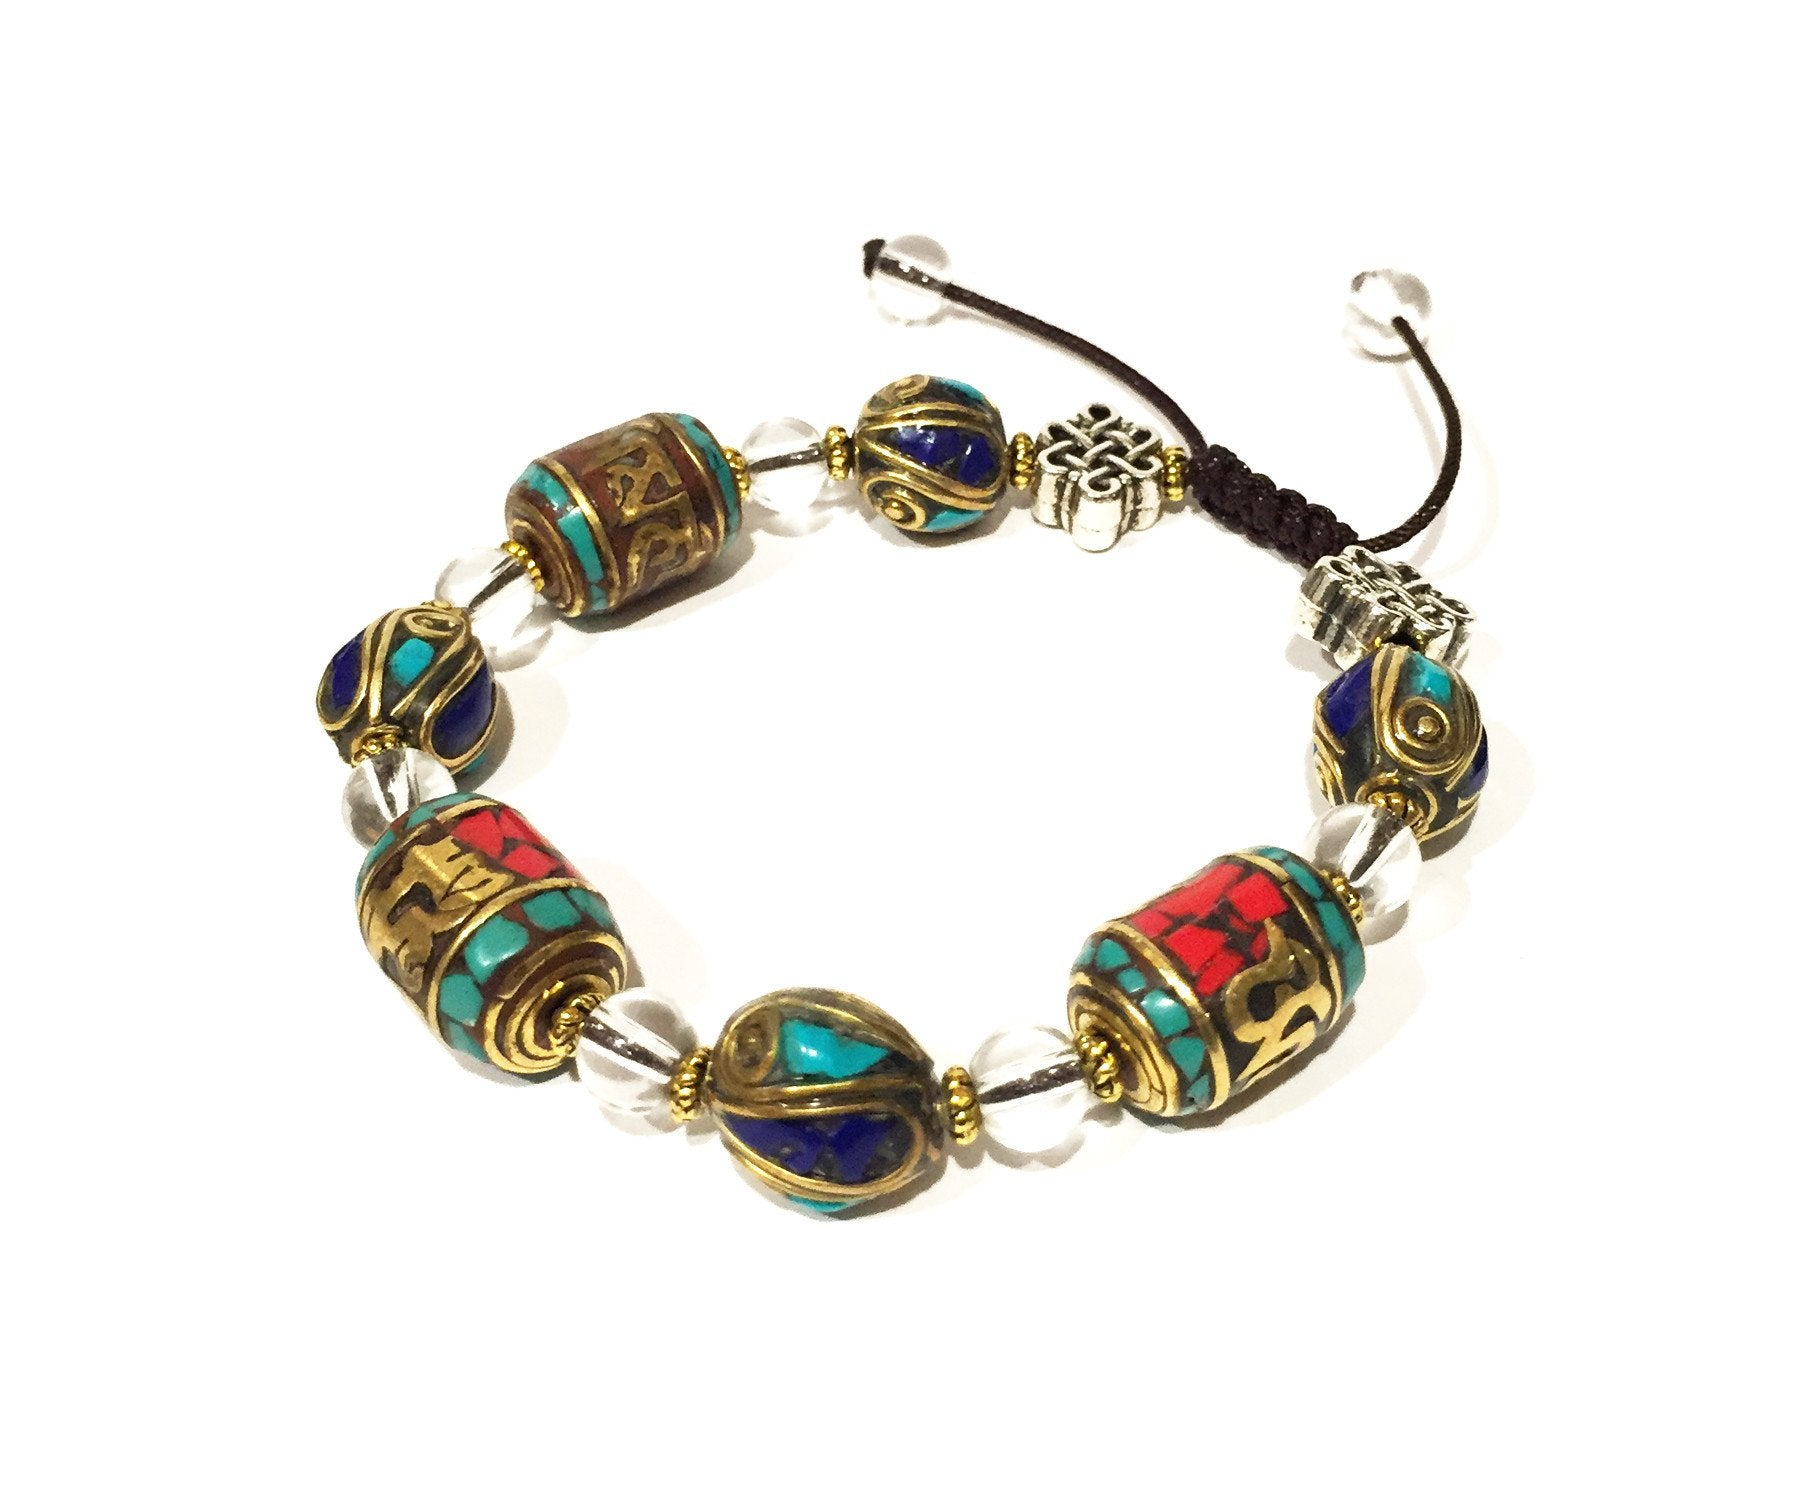 Prayer Wheel Coral Turquoise Bracelet - B